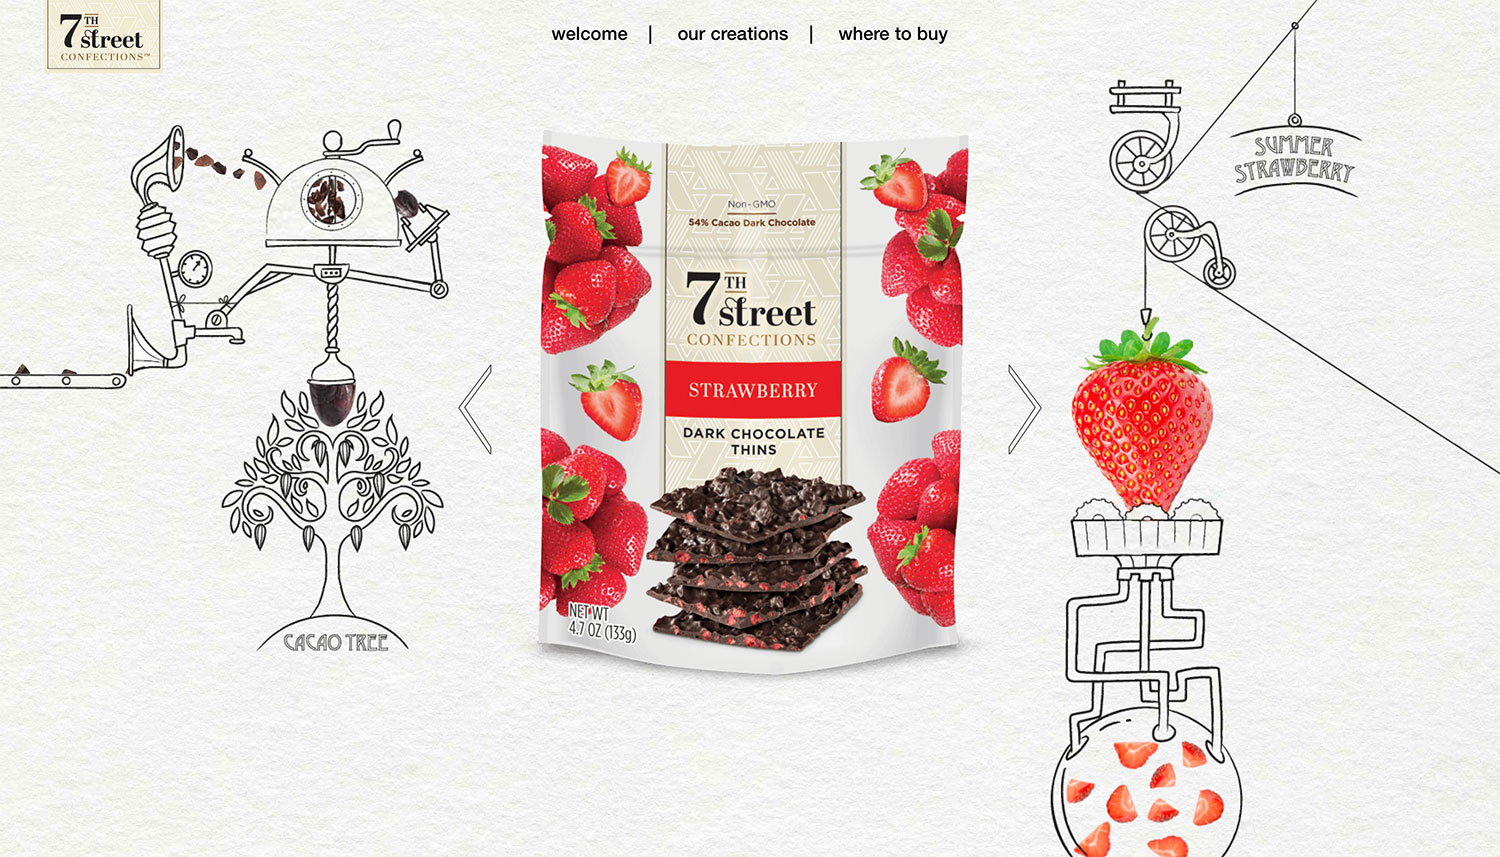 7th Street confections - Strawberry.jpg